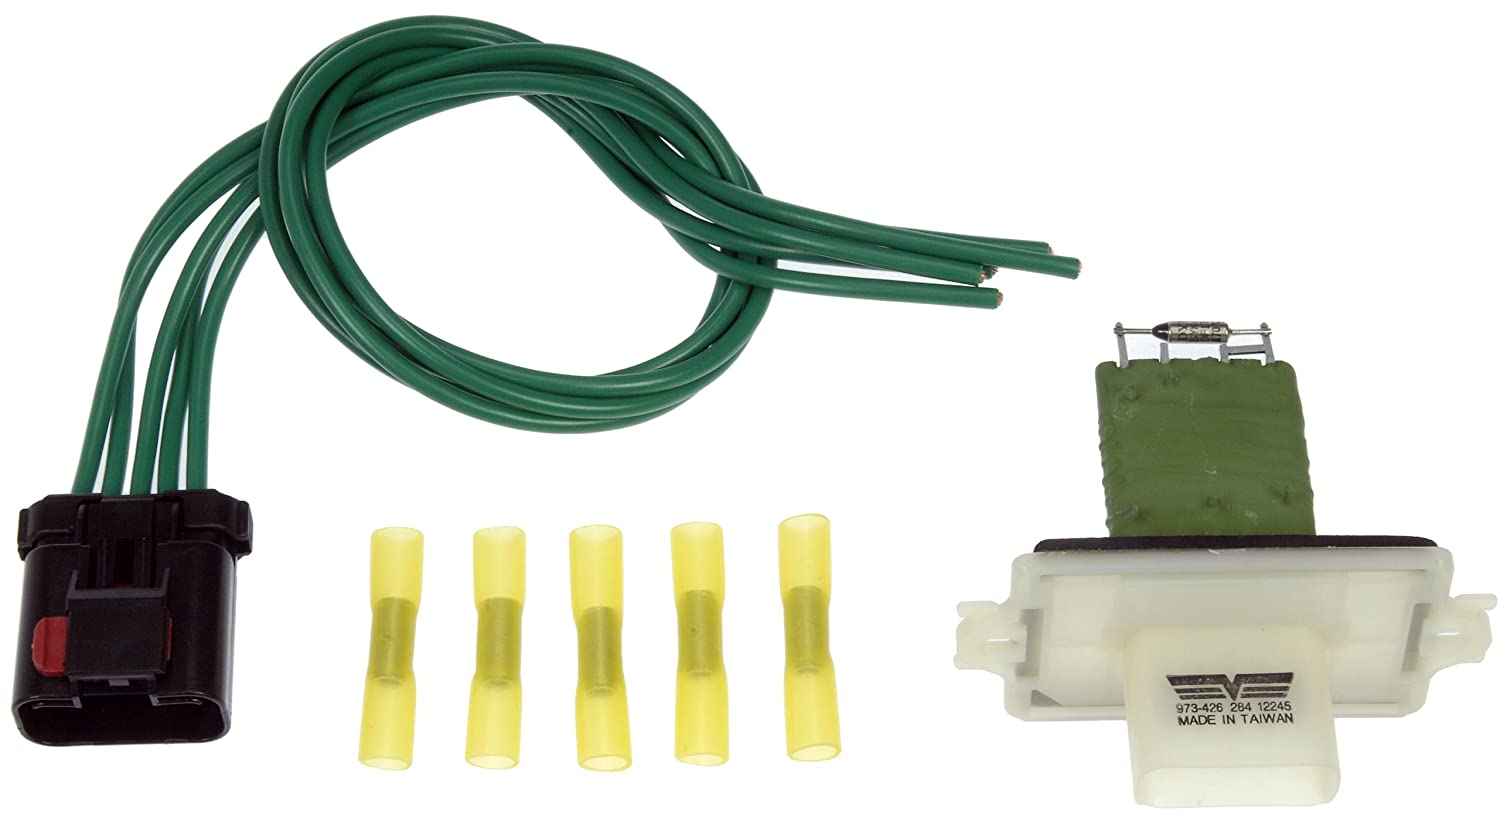 71d6VCcmzNL._SL1500_ amazon com dorman 973 426 blower motor resistor kit automotive  at mifinder.co